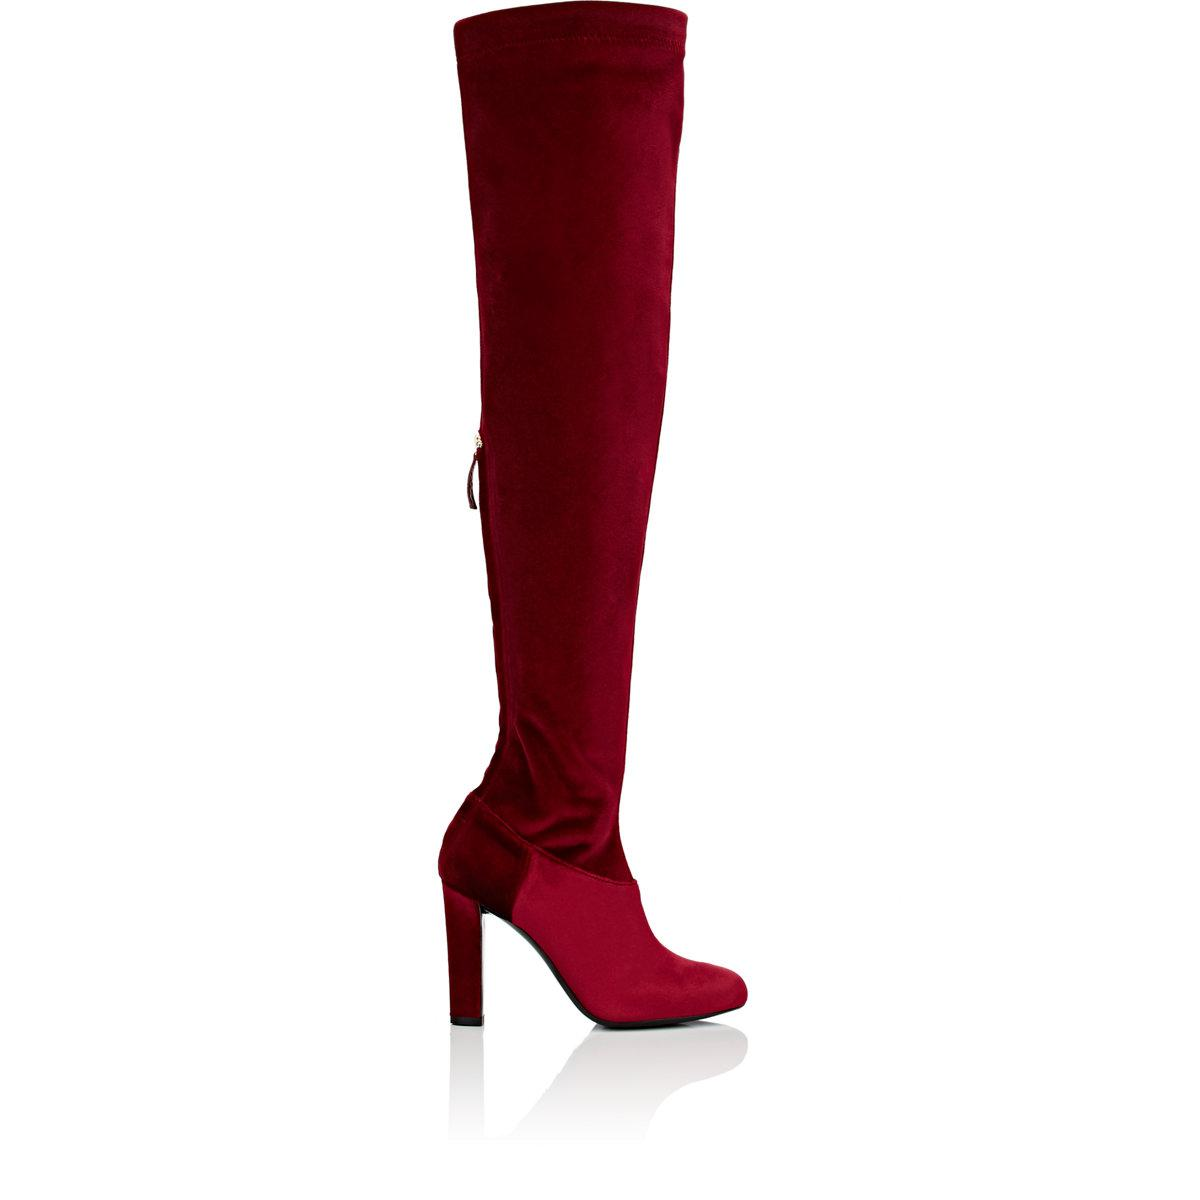 Free Shipping Outlet Store velvet over-the-knee boots - Black Alberta Ferretti Shop Cheap Online Cheap Sale Amazon Cheap Footlocker Pictures Cheap Top Quality lHxioYAv